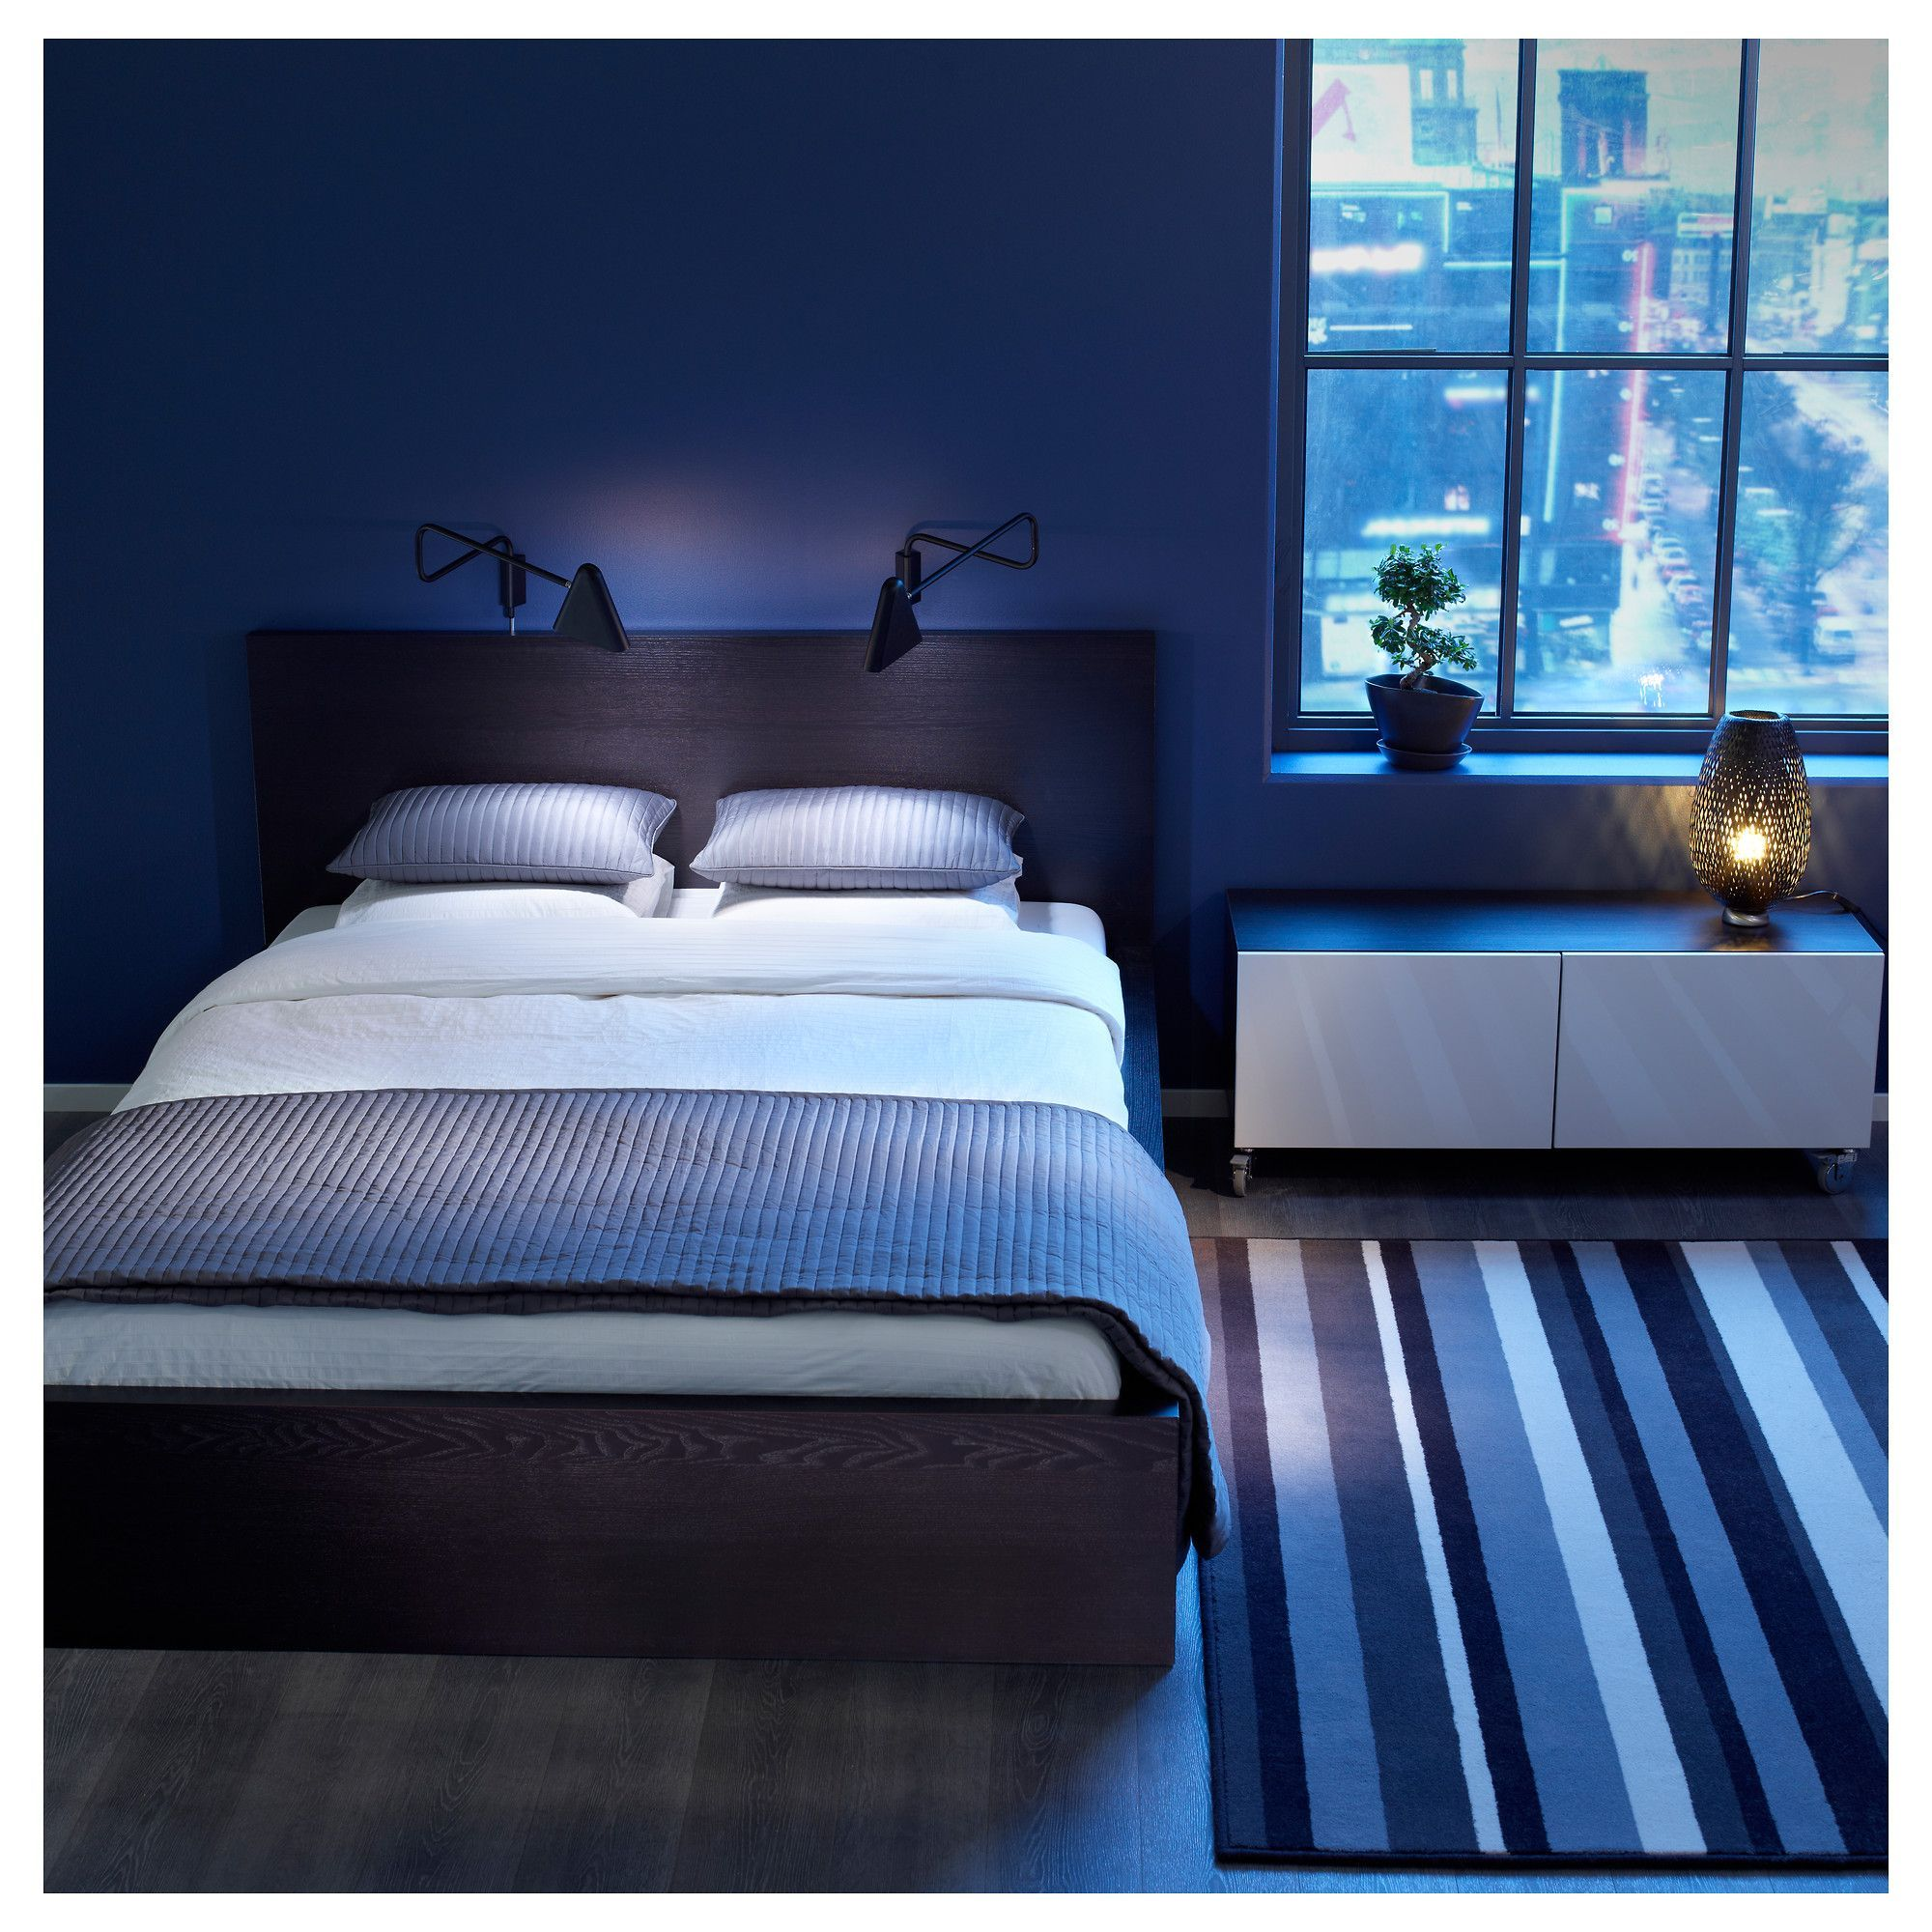 Bedroom ideas for teenage girls dark blue - Best Blue Themed Bedroom Decorations With Dark Wooden Platform Bed Plus White Bedding Plus Brown Wooden Headbaord Plus White Cushions And Striped Carpet